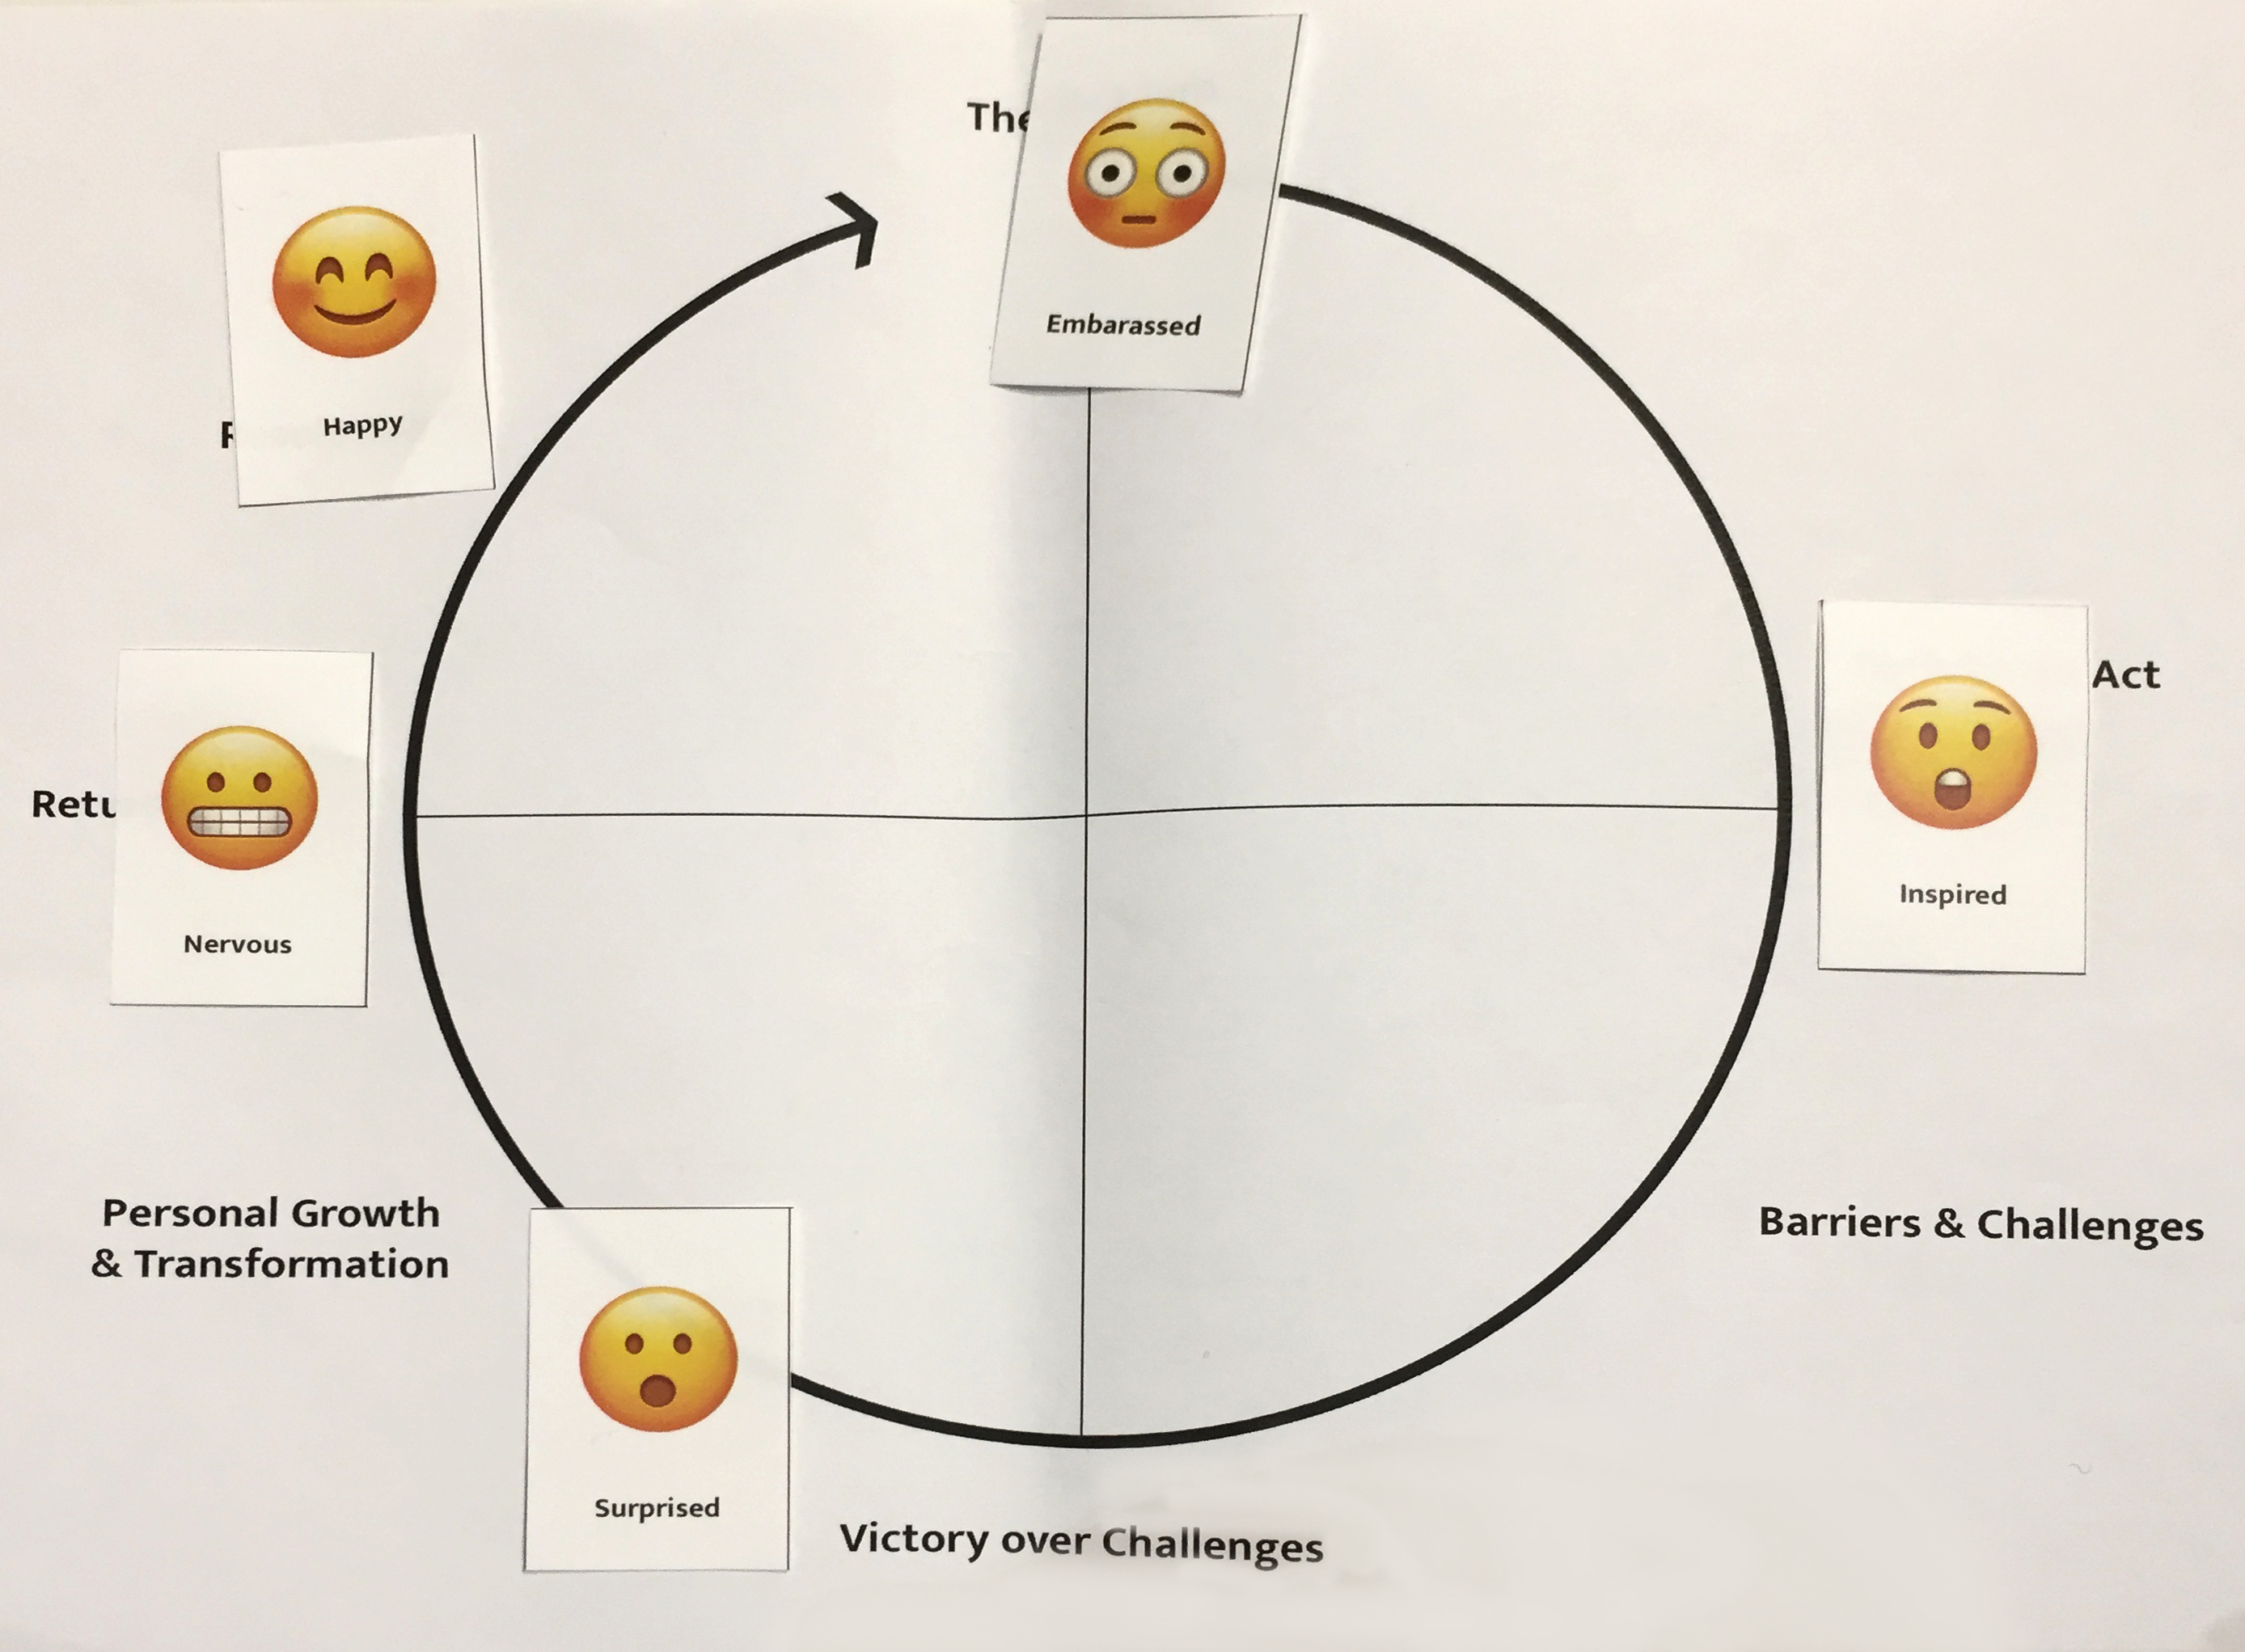 Showing an emotional journey diagram